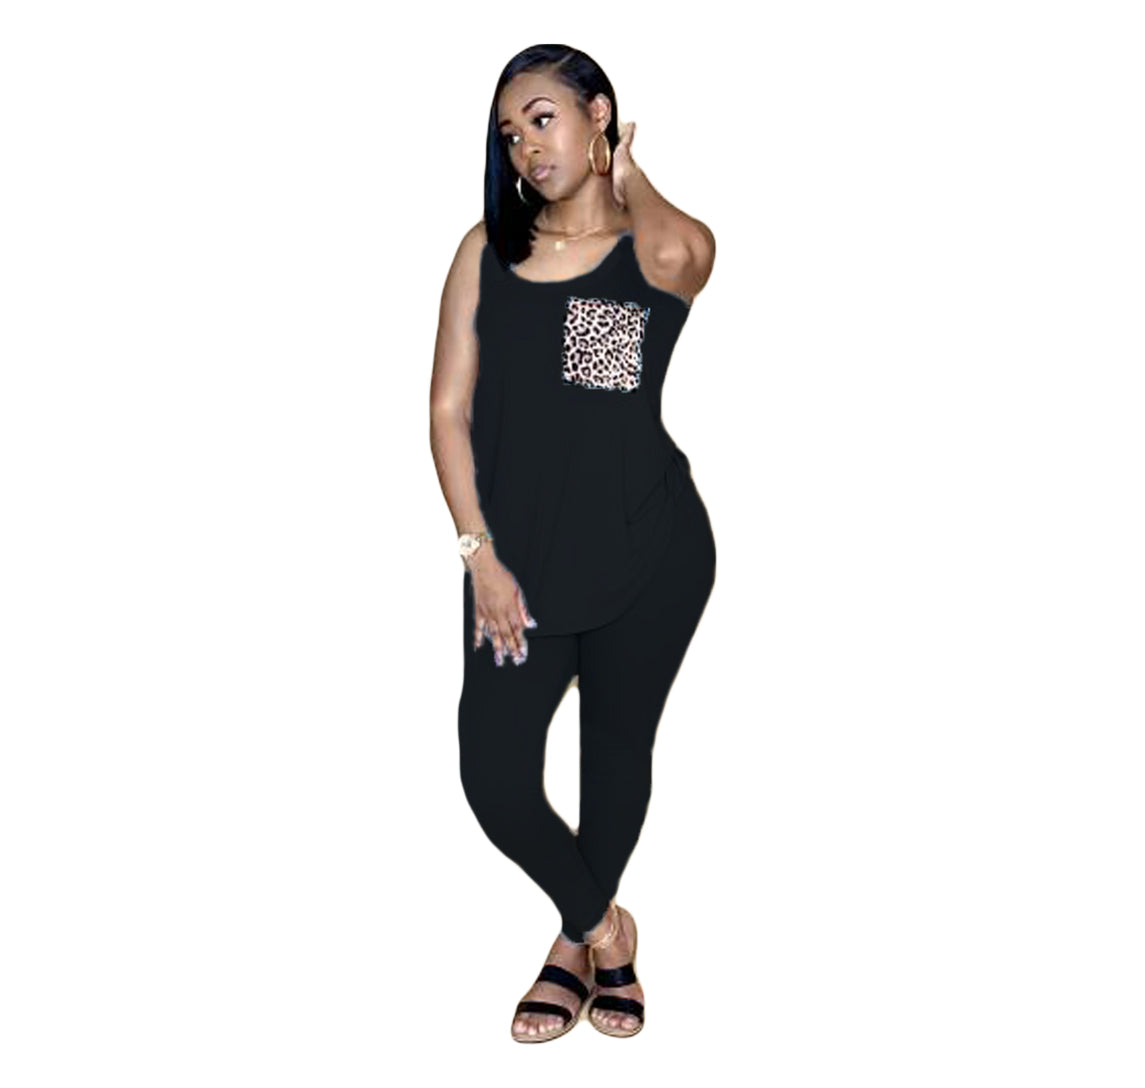 2020 Women Two Pieces Sets Summer Tracksuits Sleeveless O-Neck Tops+Pants Suit Sporty Fitness Leopard Outfits 2 Pcs Street G8221